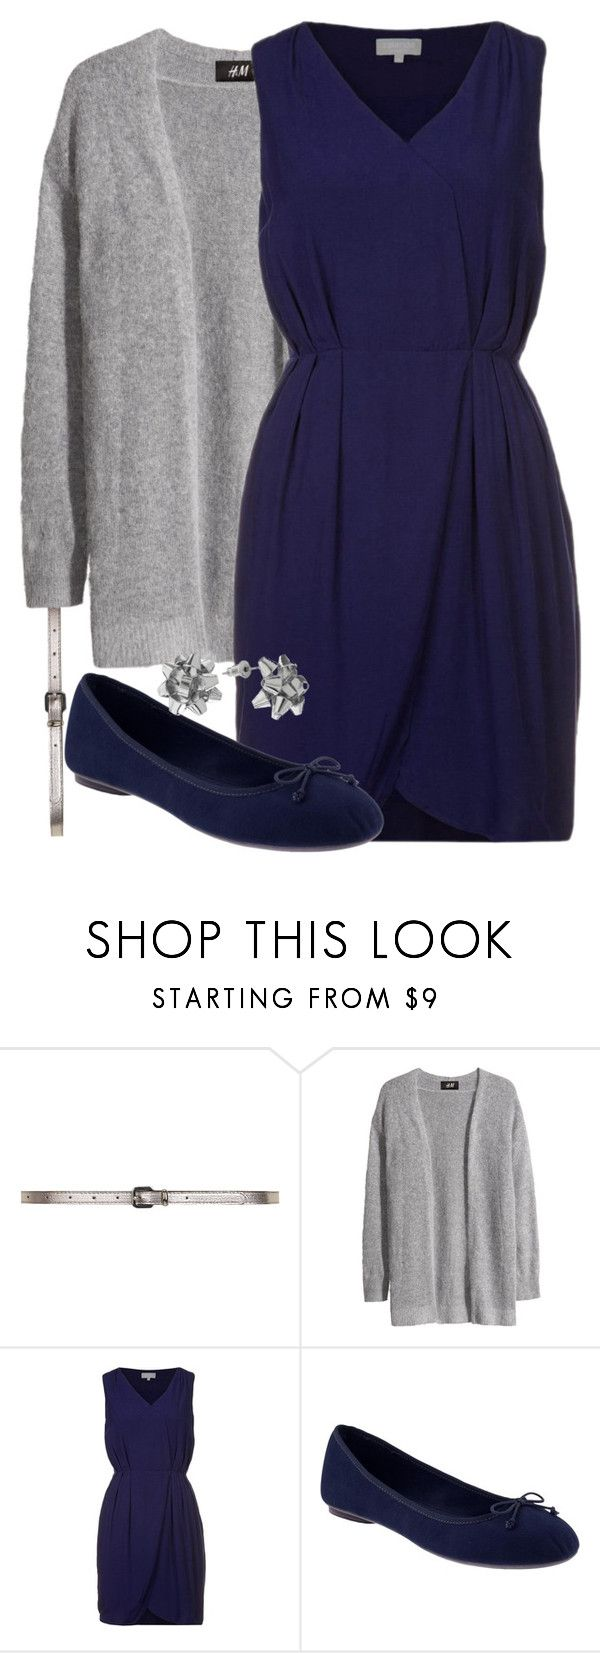 """""""Teacher Outfits on a Teacher's Budget 144"""" by allij28 ❤ liked on Polyvore featuring Dorothy Perkins, H&M, Zalando and Old Navy"""